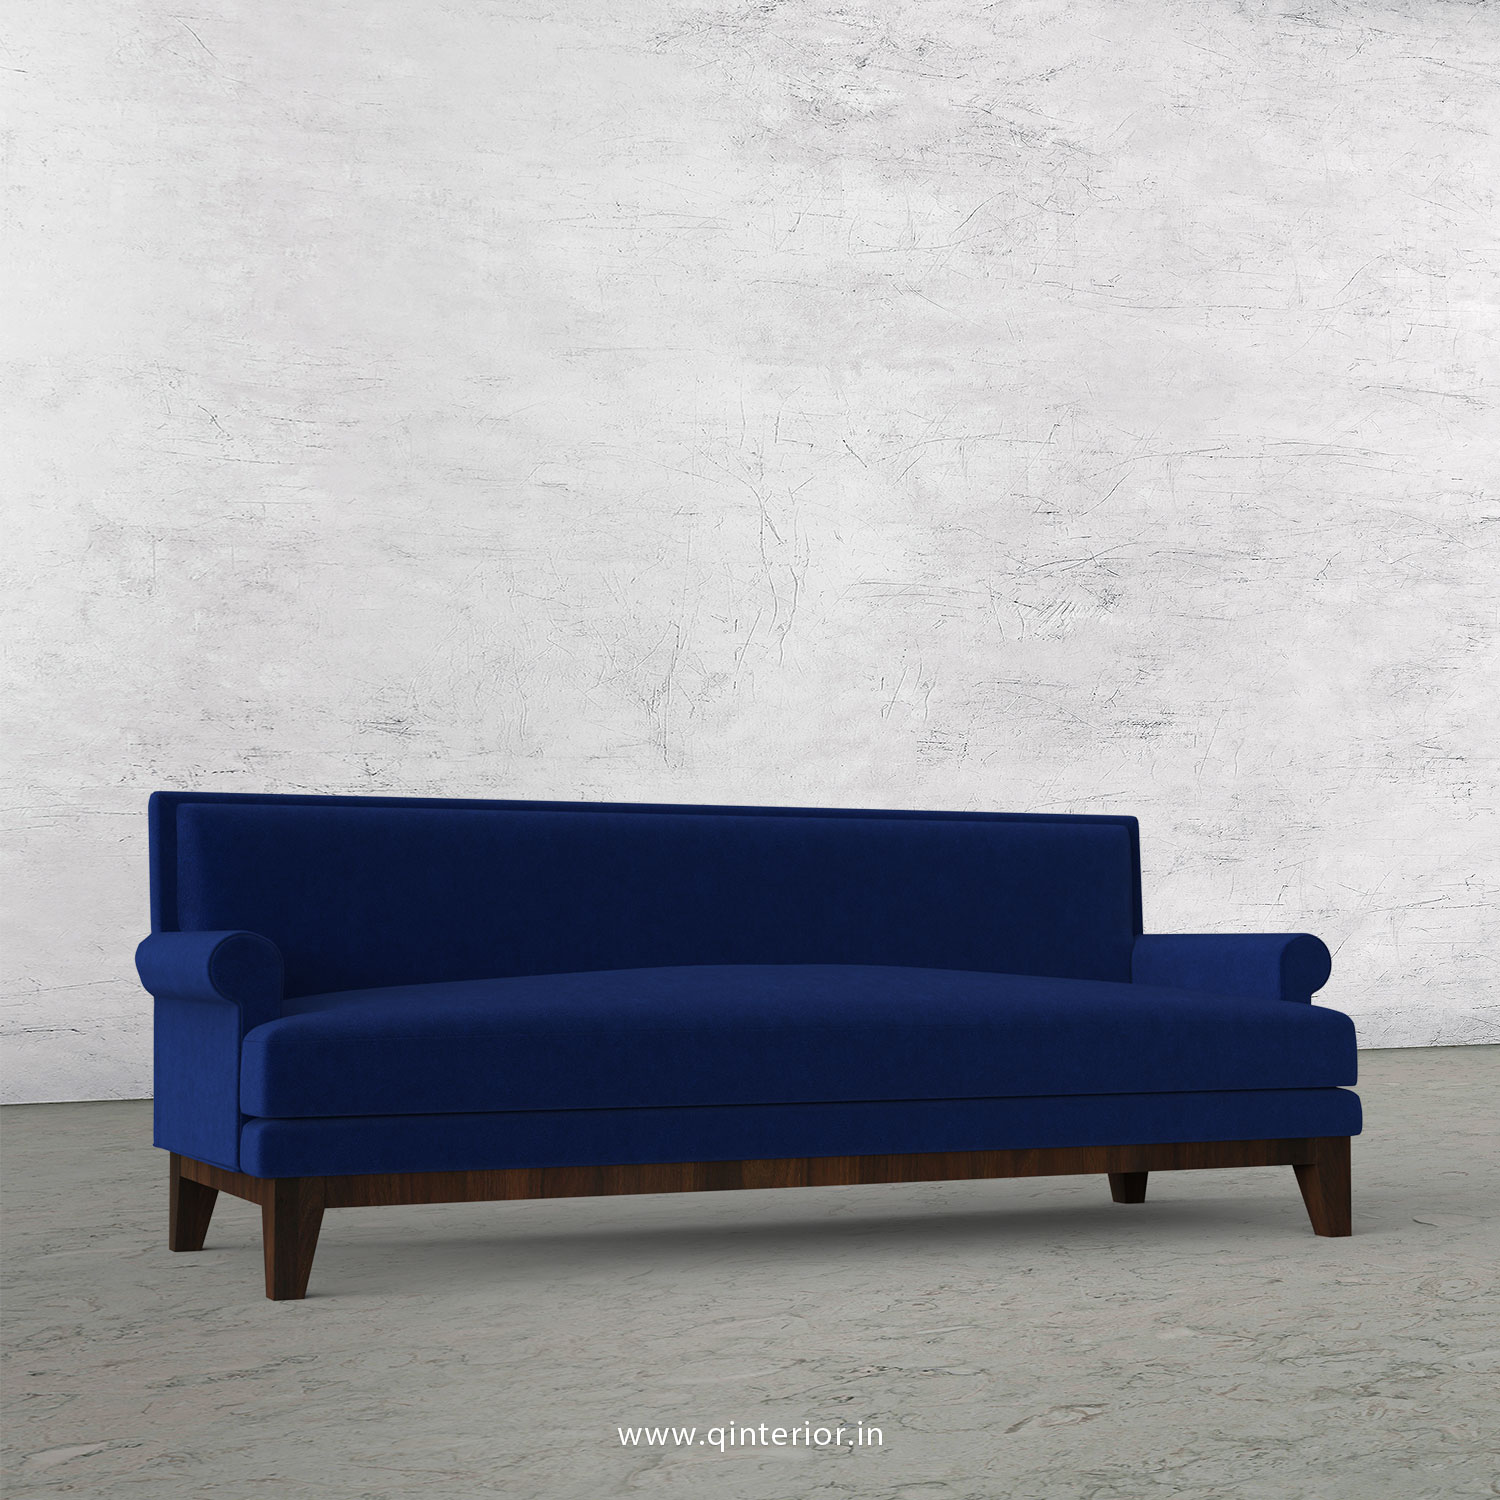 Aviana 3 Seater Sofa in Velvet Fabric - SFA001 VL05